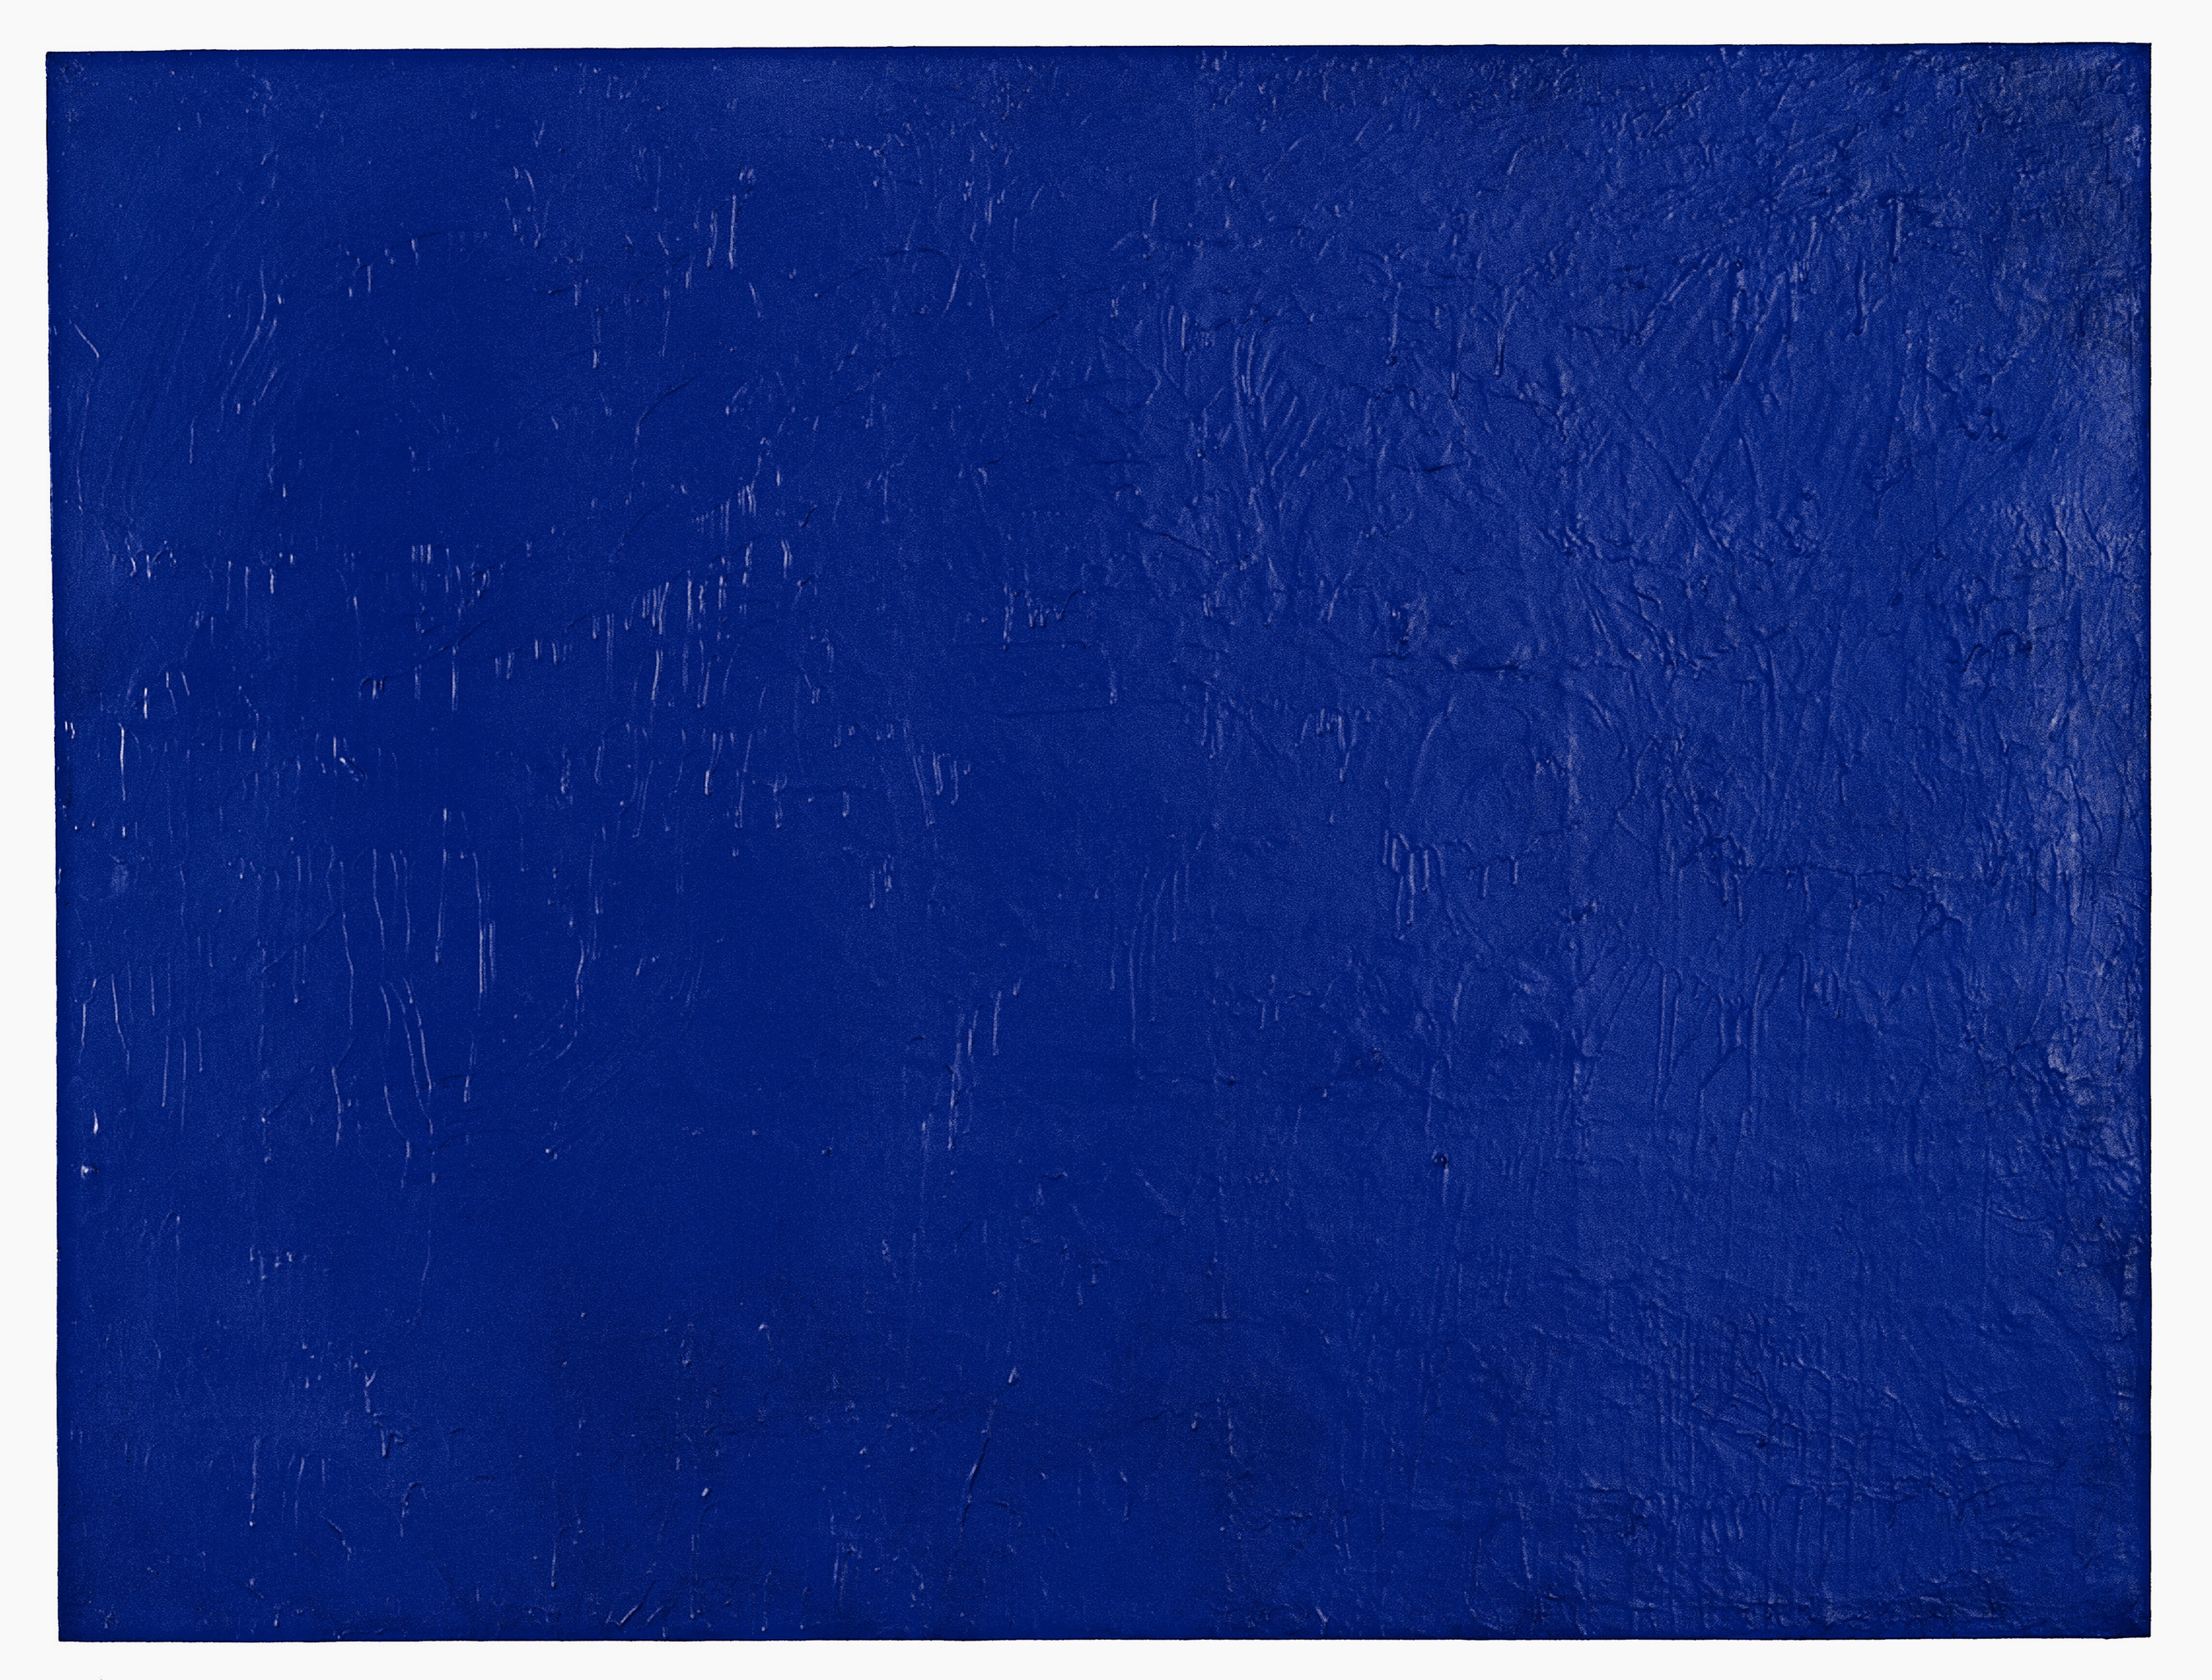 Yves Klein, IKB Godet, 1958, dry pigment, synthetic resin on gauze on panel. Private collection. ©Artists Rights Society (ARS), New York/ADAGP, Paris.